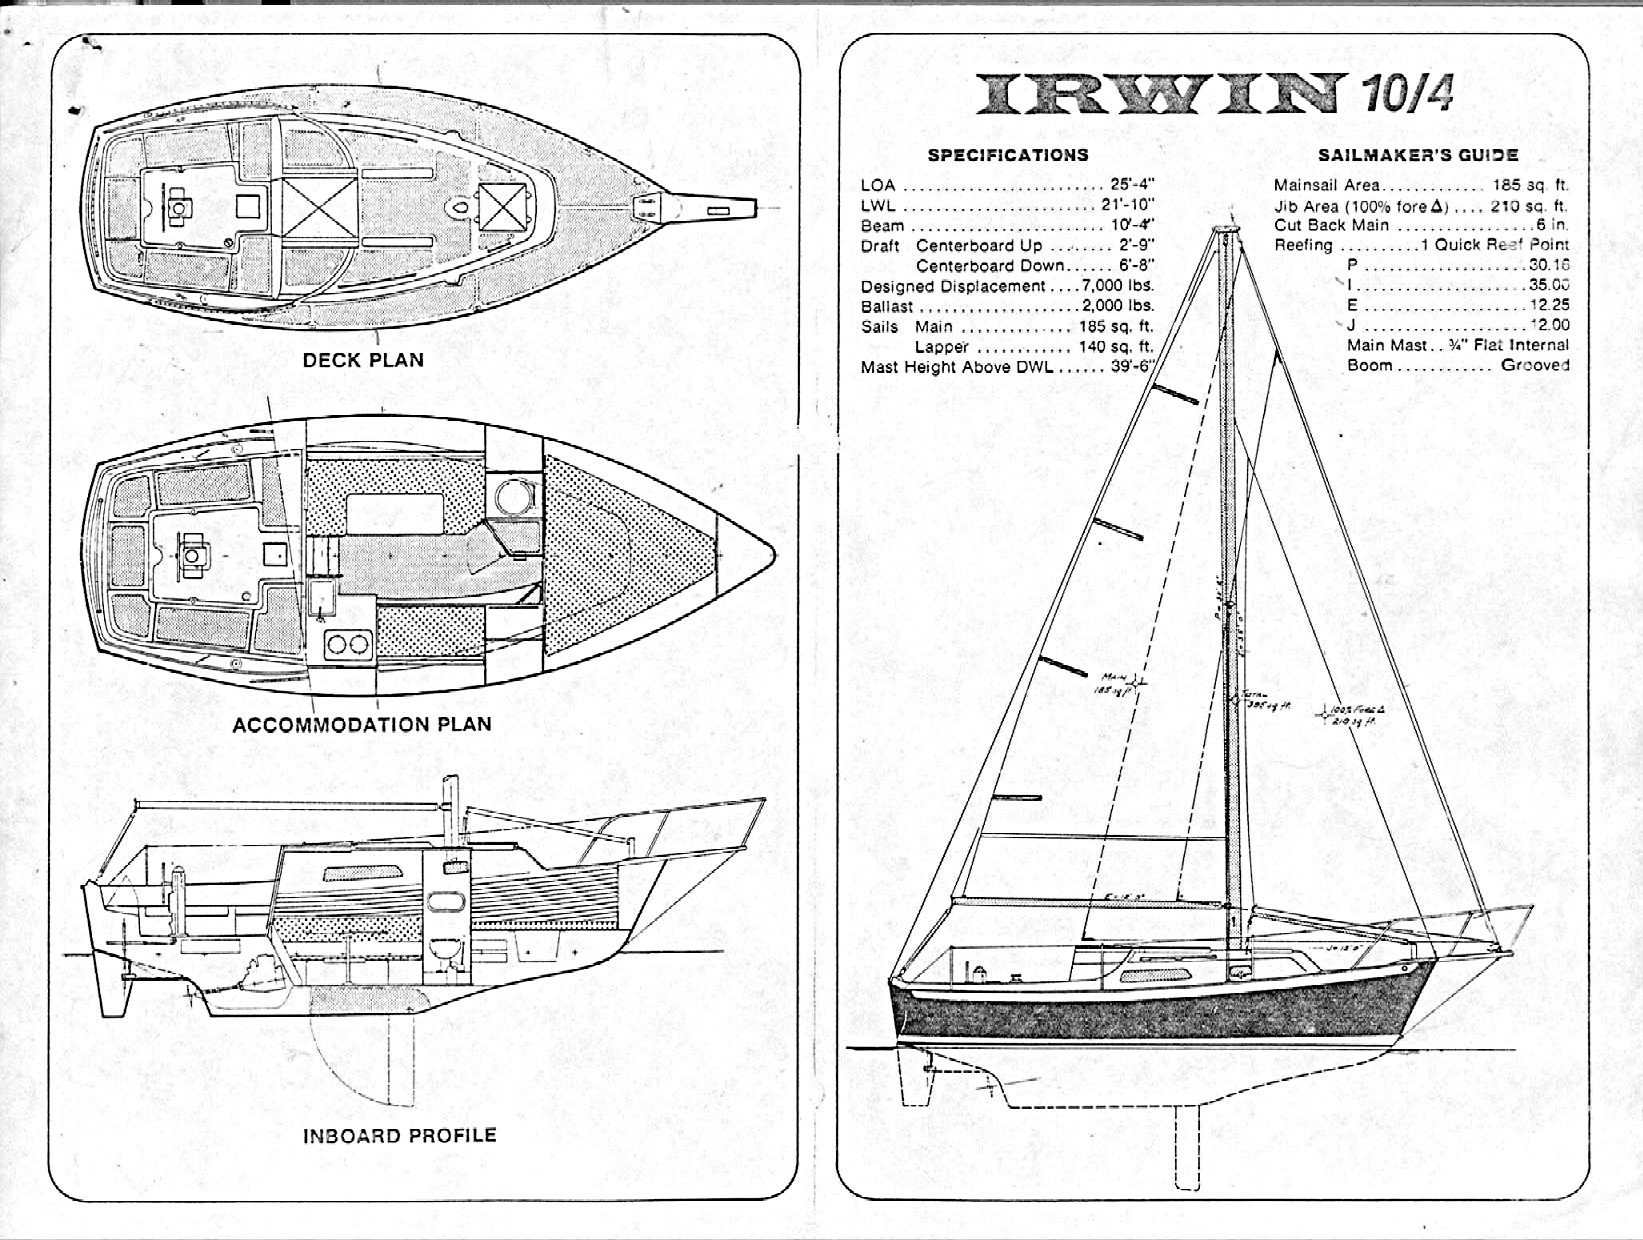 Irwin 10/4 Sailboat: The Sailing Sloop Orion